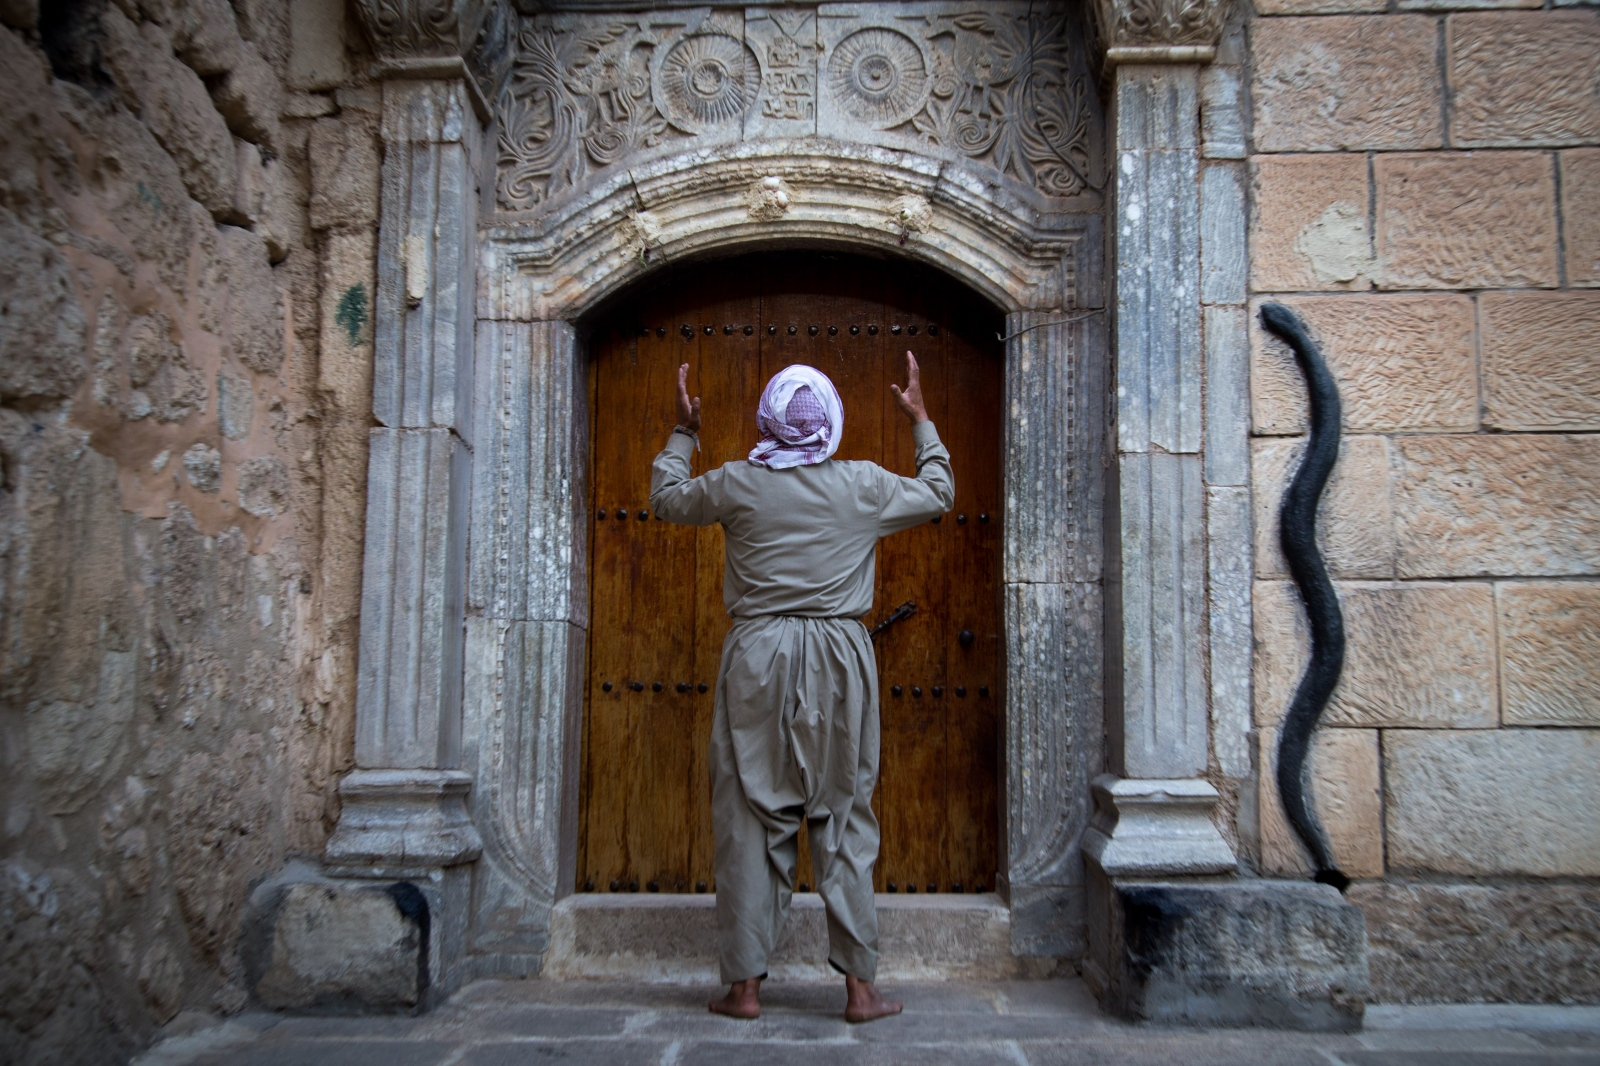 A Yazidi man prays at the entrance to the holy shrine in Lalish, Iraq.